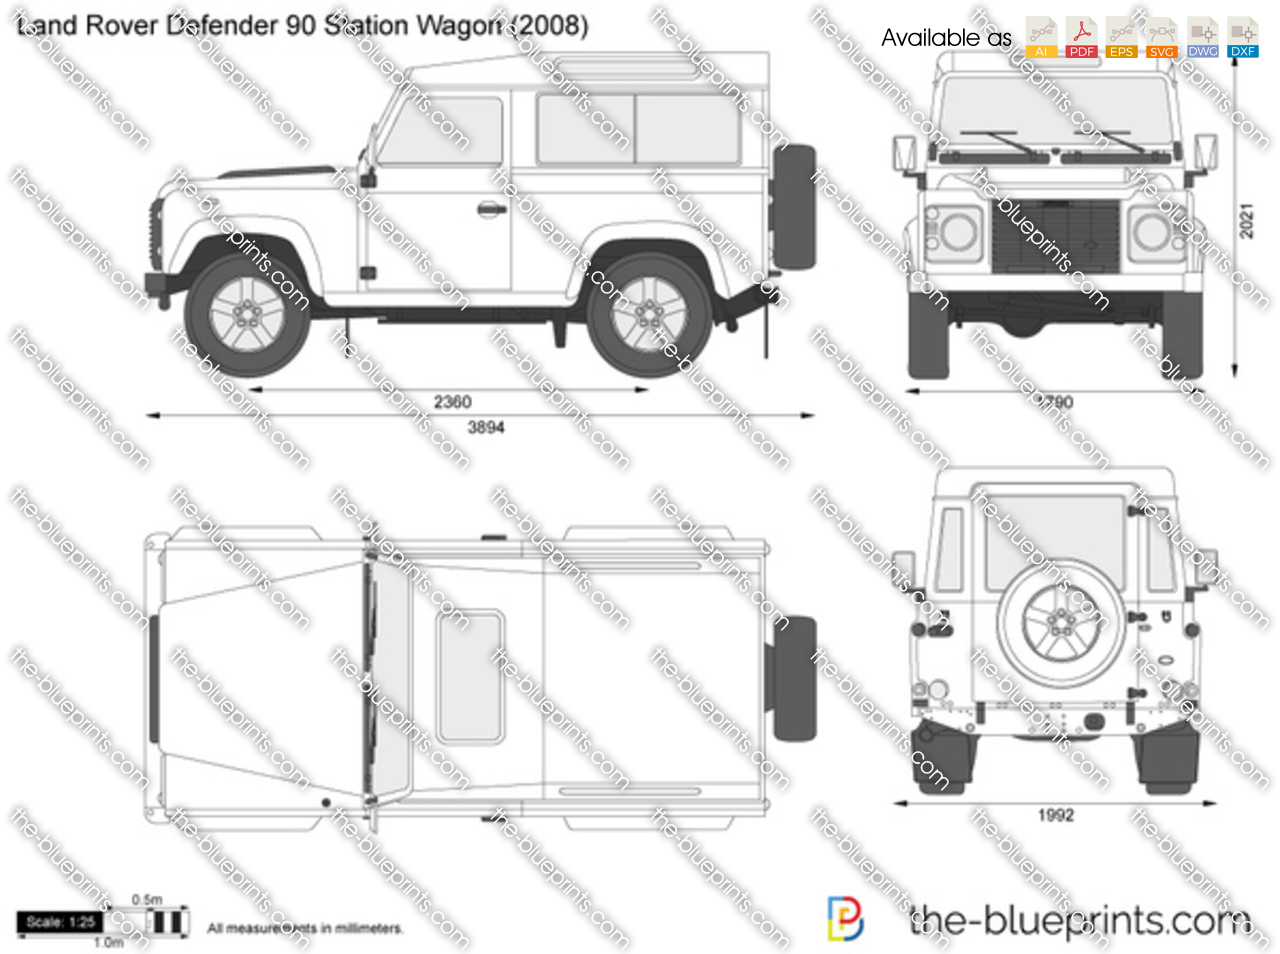 Land Rover Defender 90 Station Wagon 2001